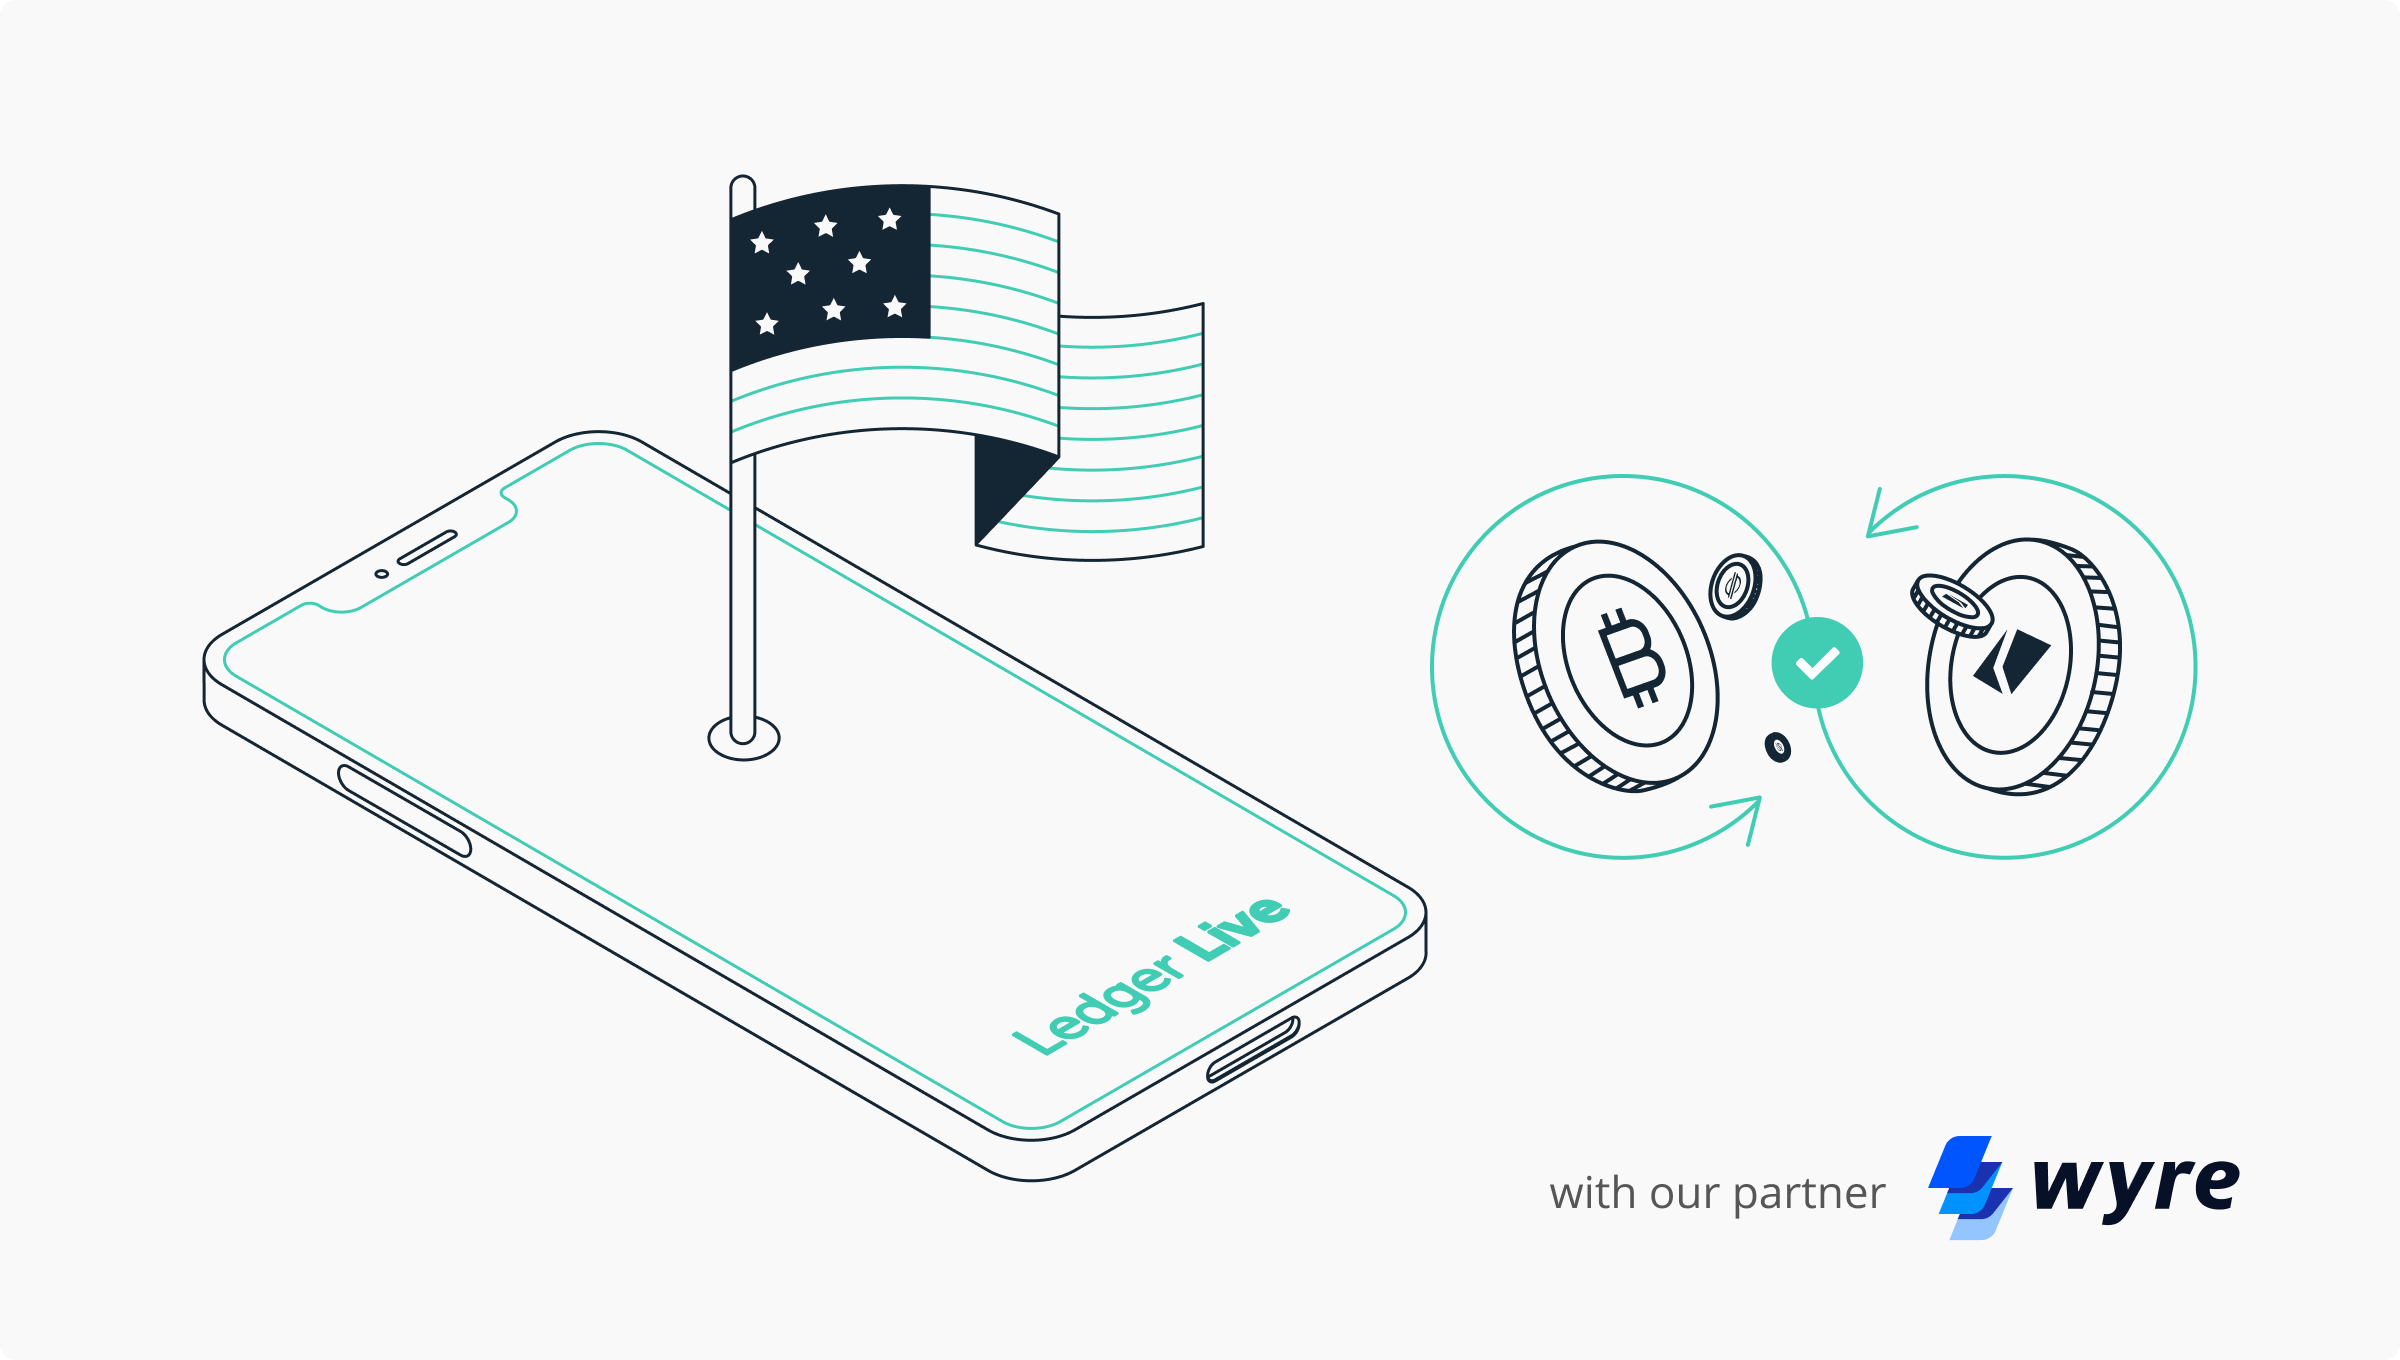 US investors can now exchange their digital assets on Ledger with Wyre!